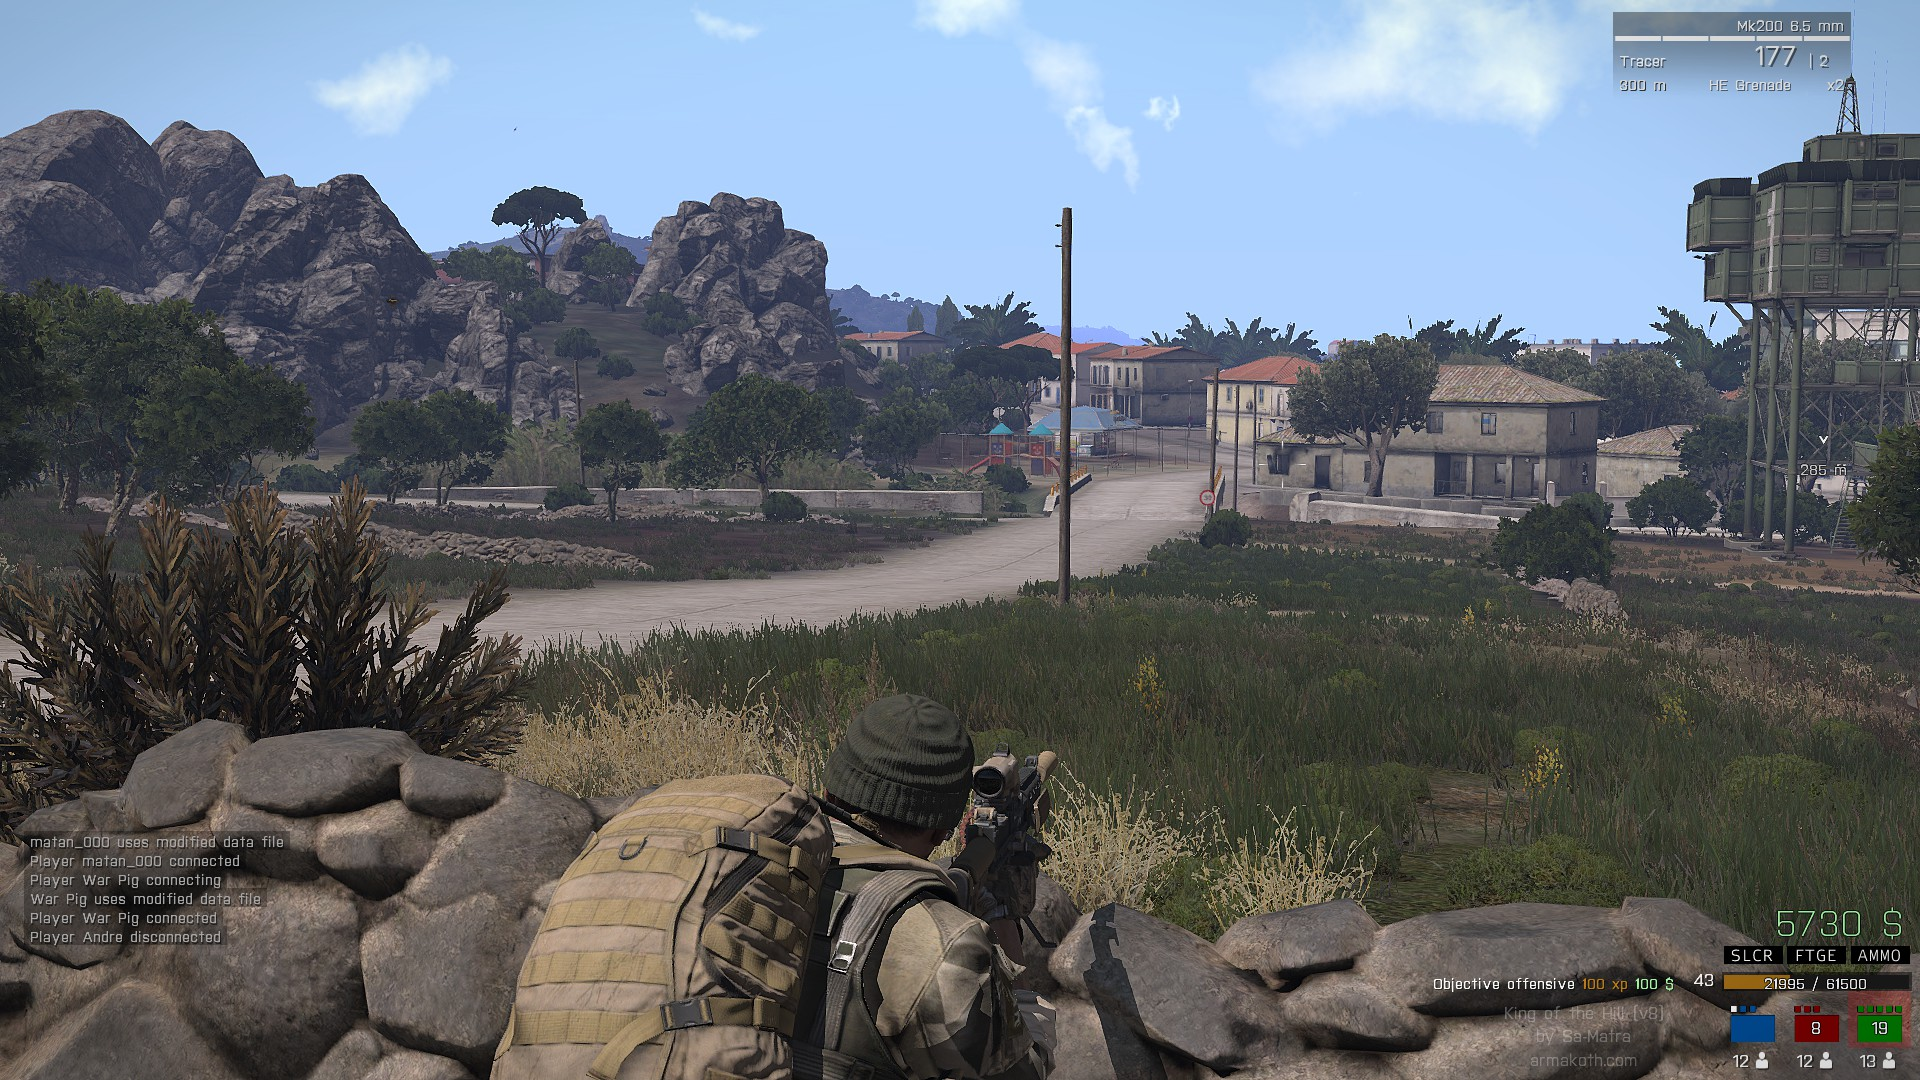 arma 3 king of the hill level hack 2018